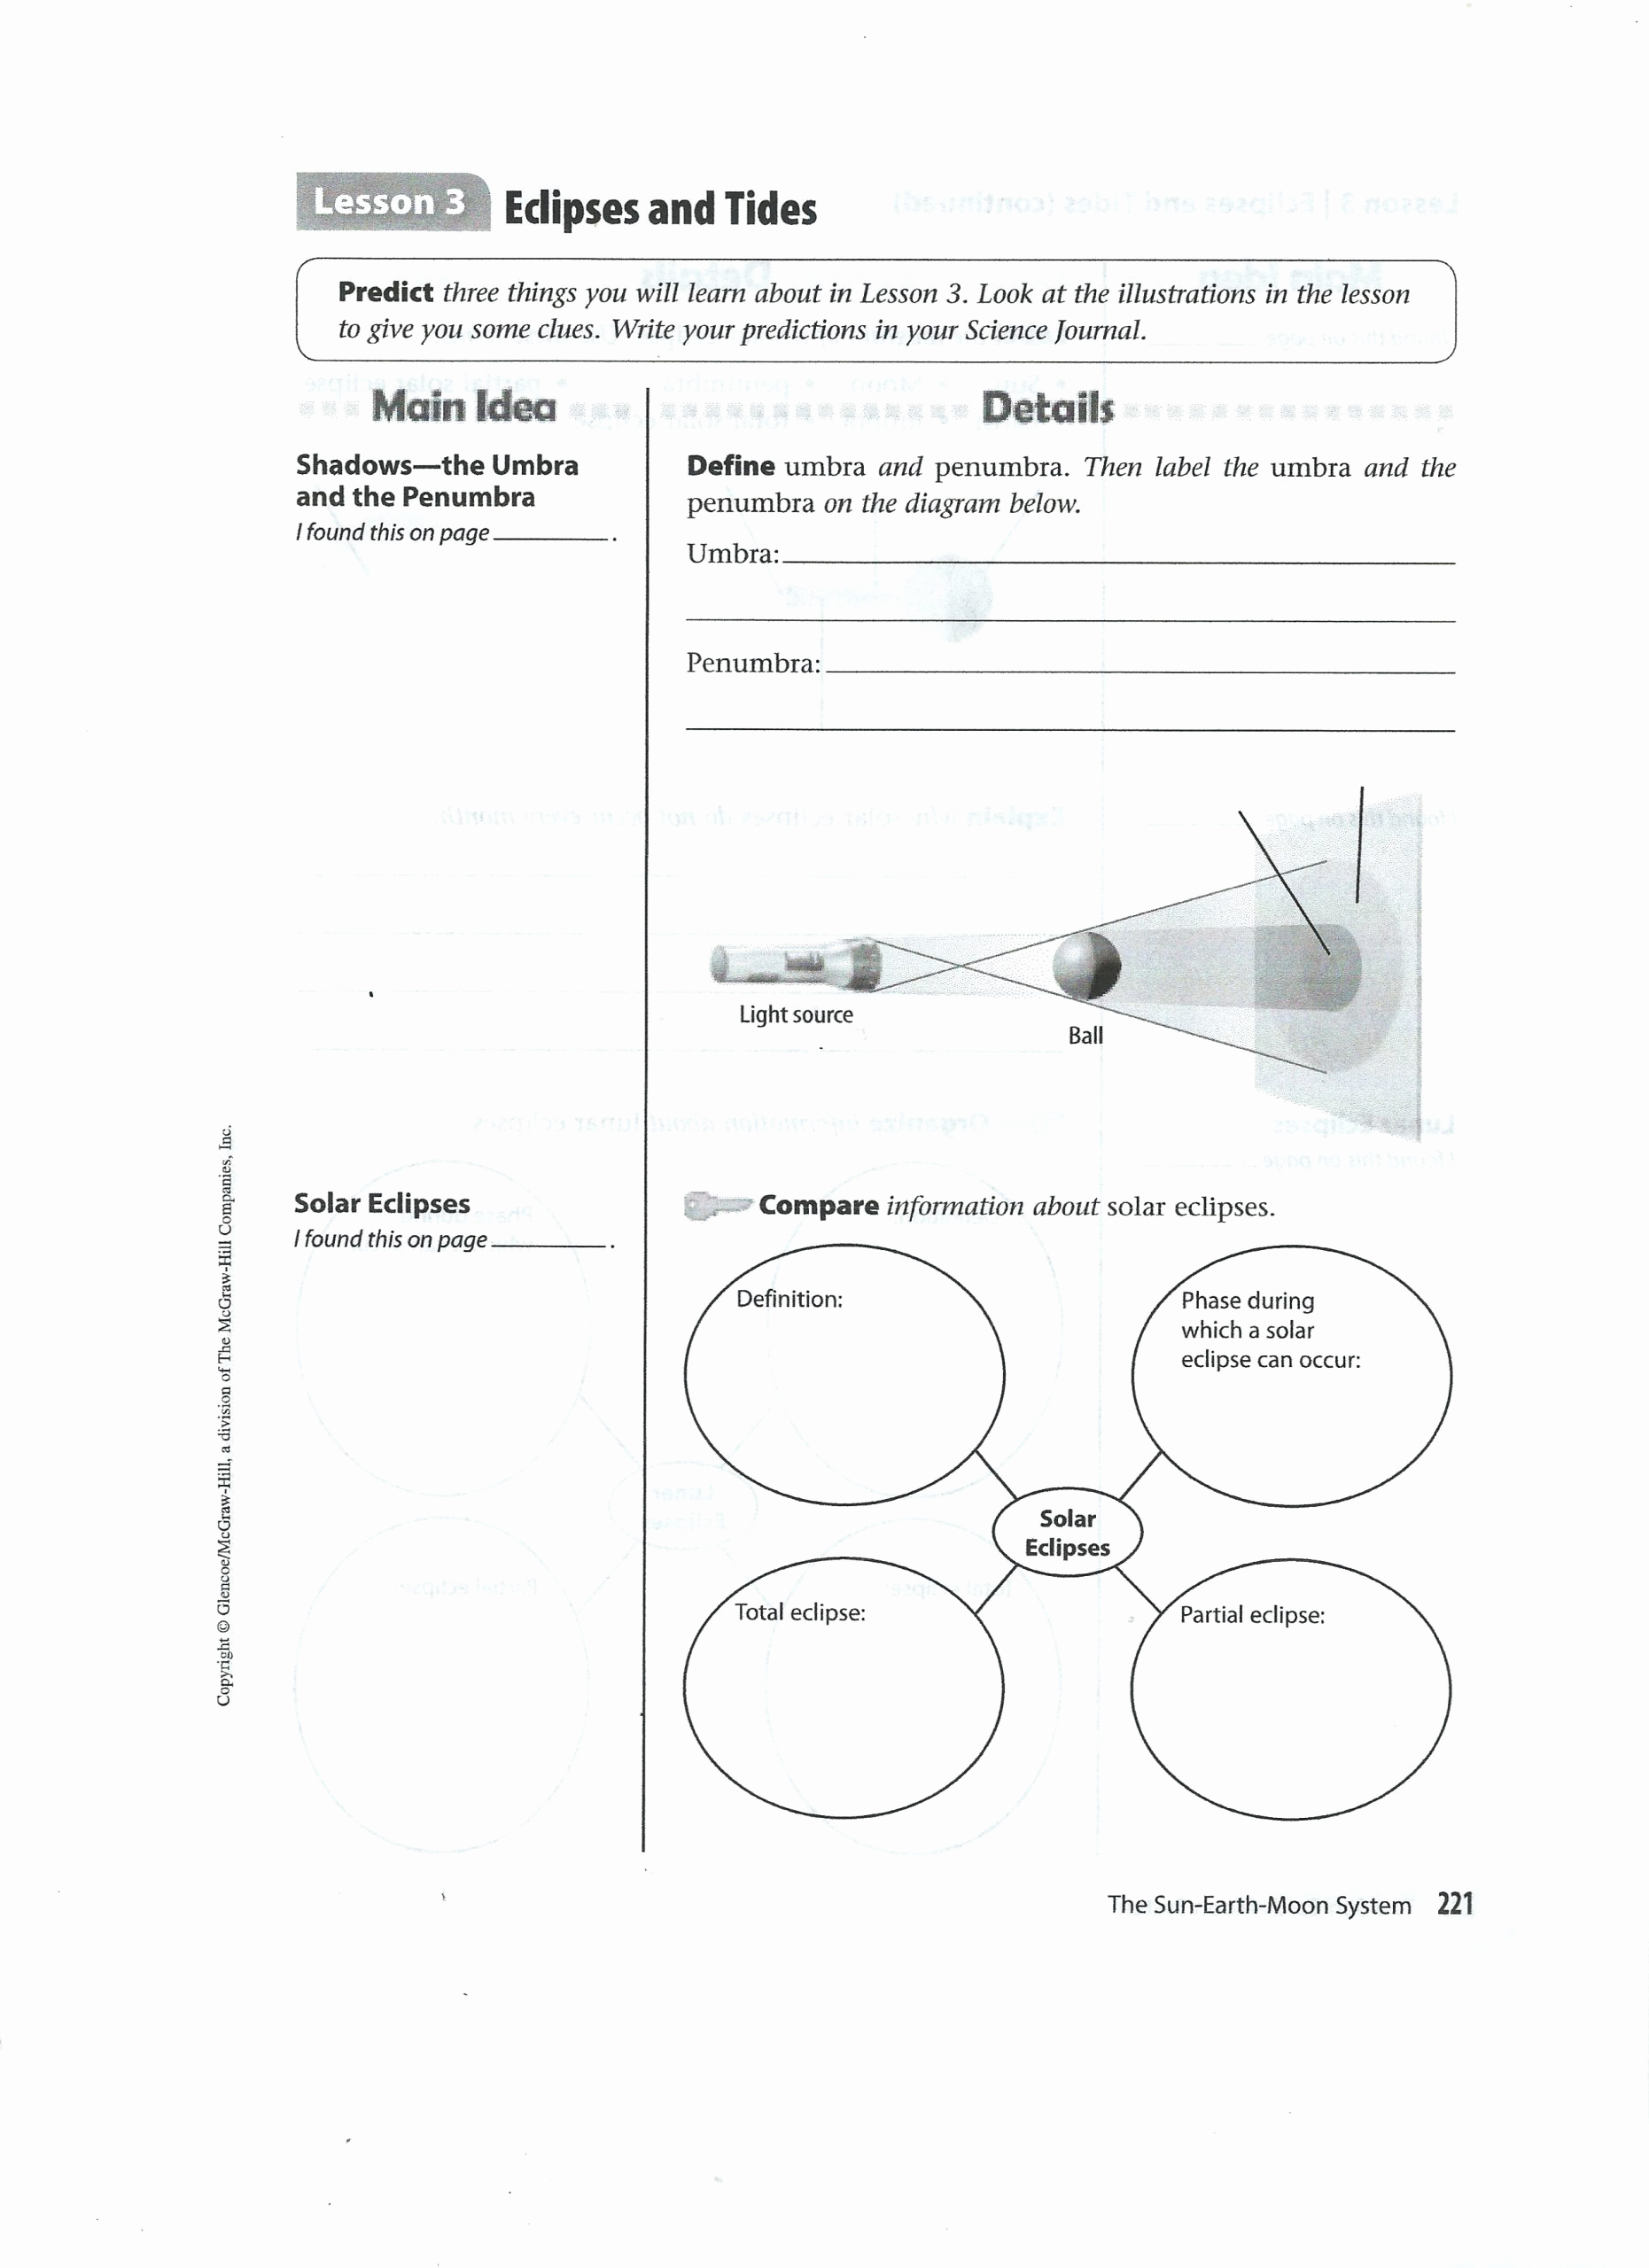 Eclipse Worksheets for Middle School Fresh 20 solar Eclipse Worksheets Middle School